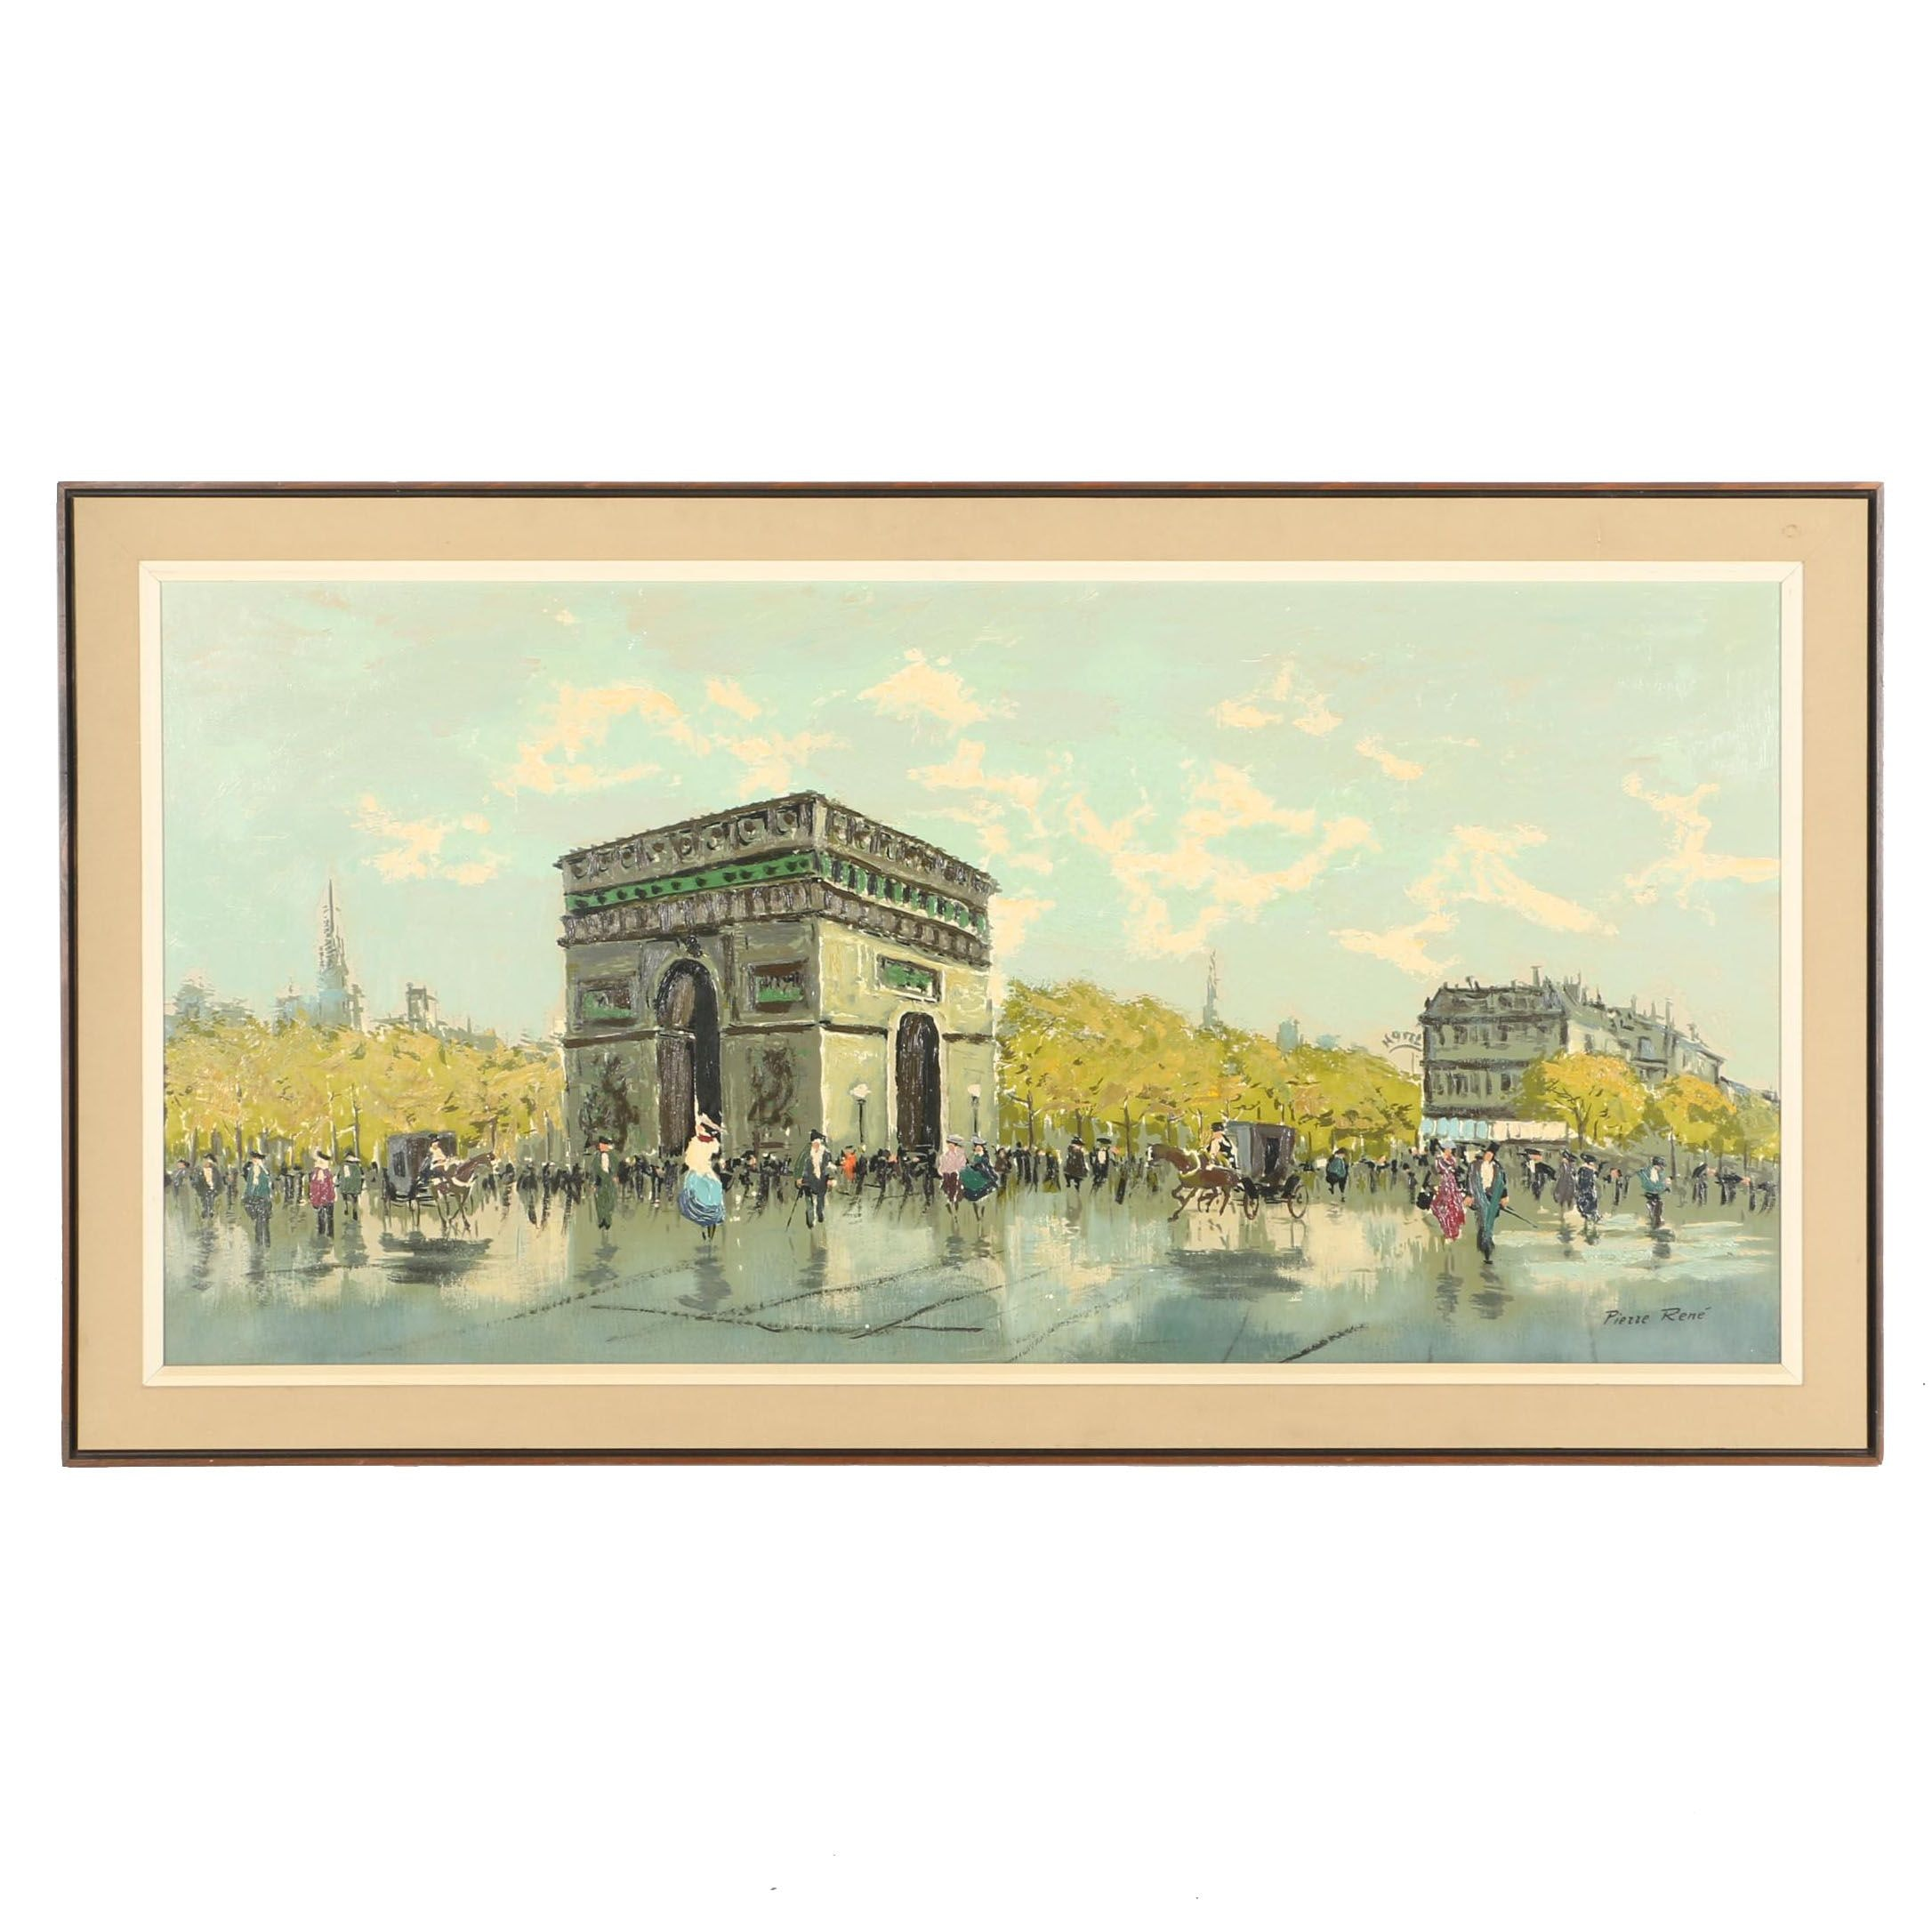 "Pierre Rene Signed Original Oil Painting ""Arc de Triumph"""